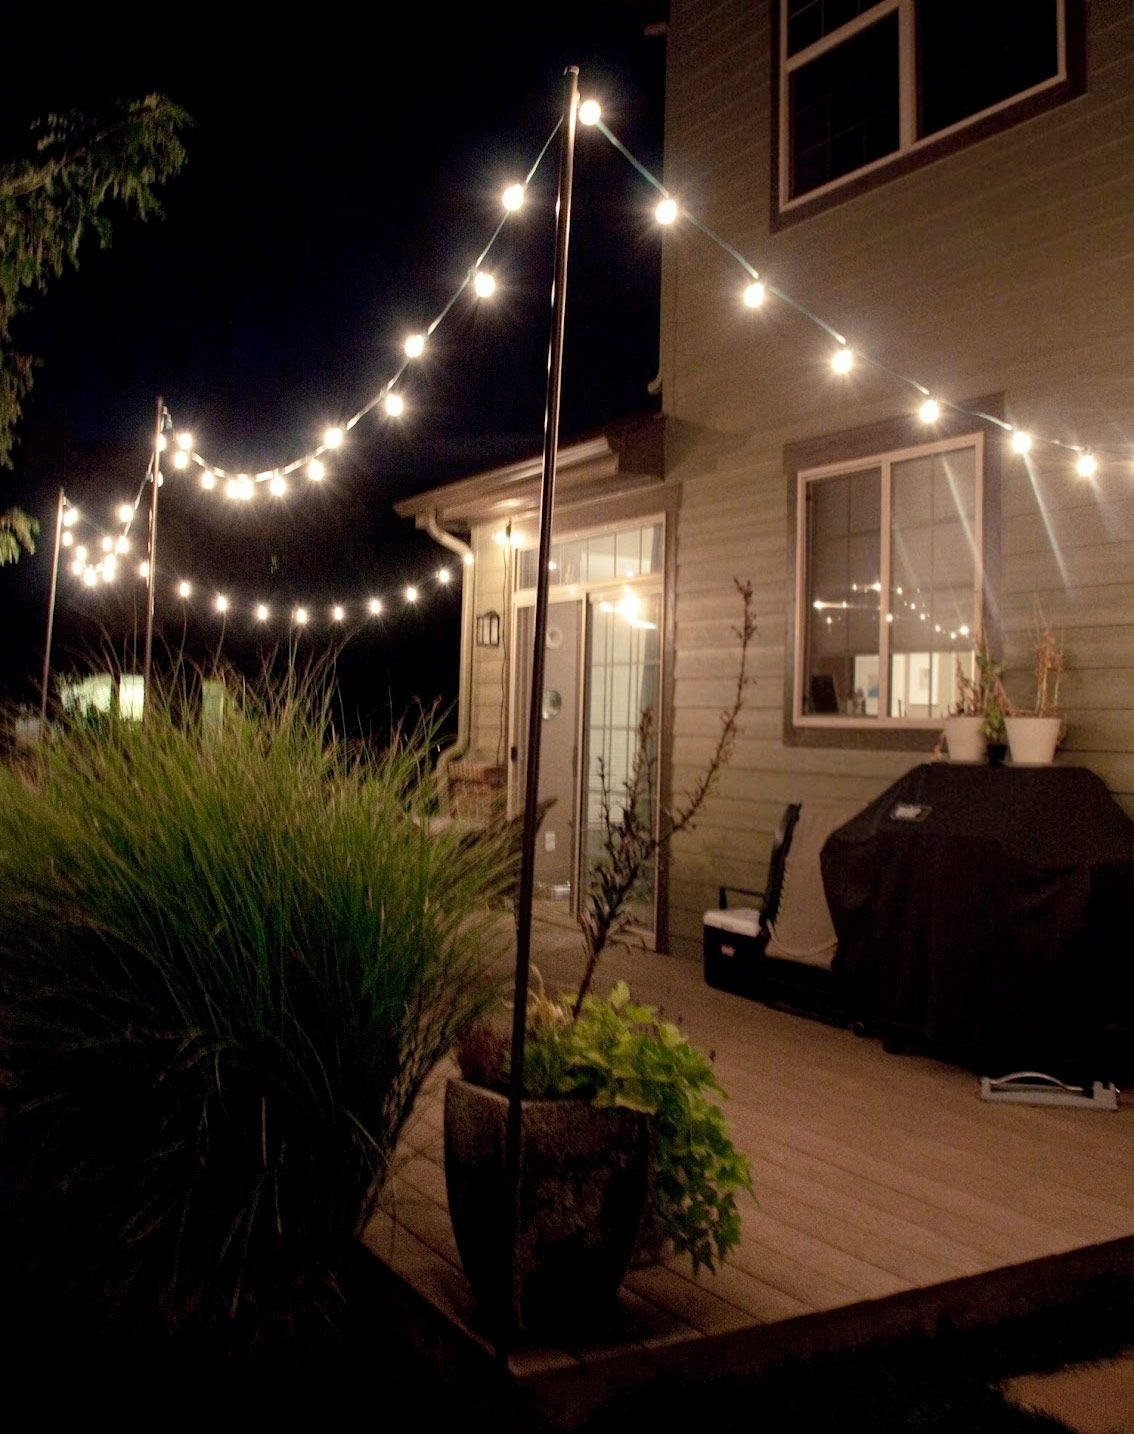 Topp 10 Måsten I Sommar!   Garden, Patios And Yards With Regard To Outdoor Lanterns For Deck (View 5 of 20)